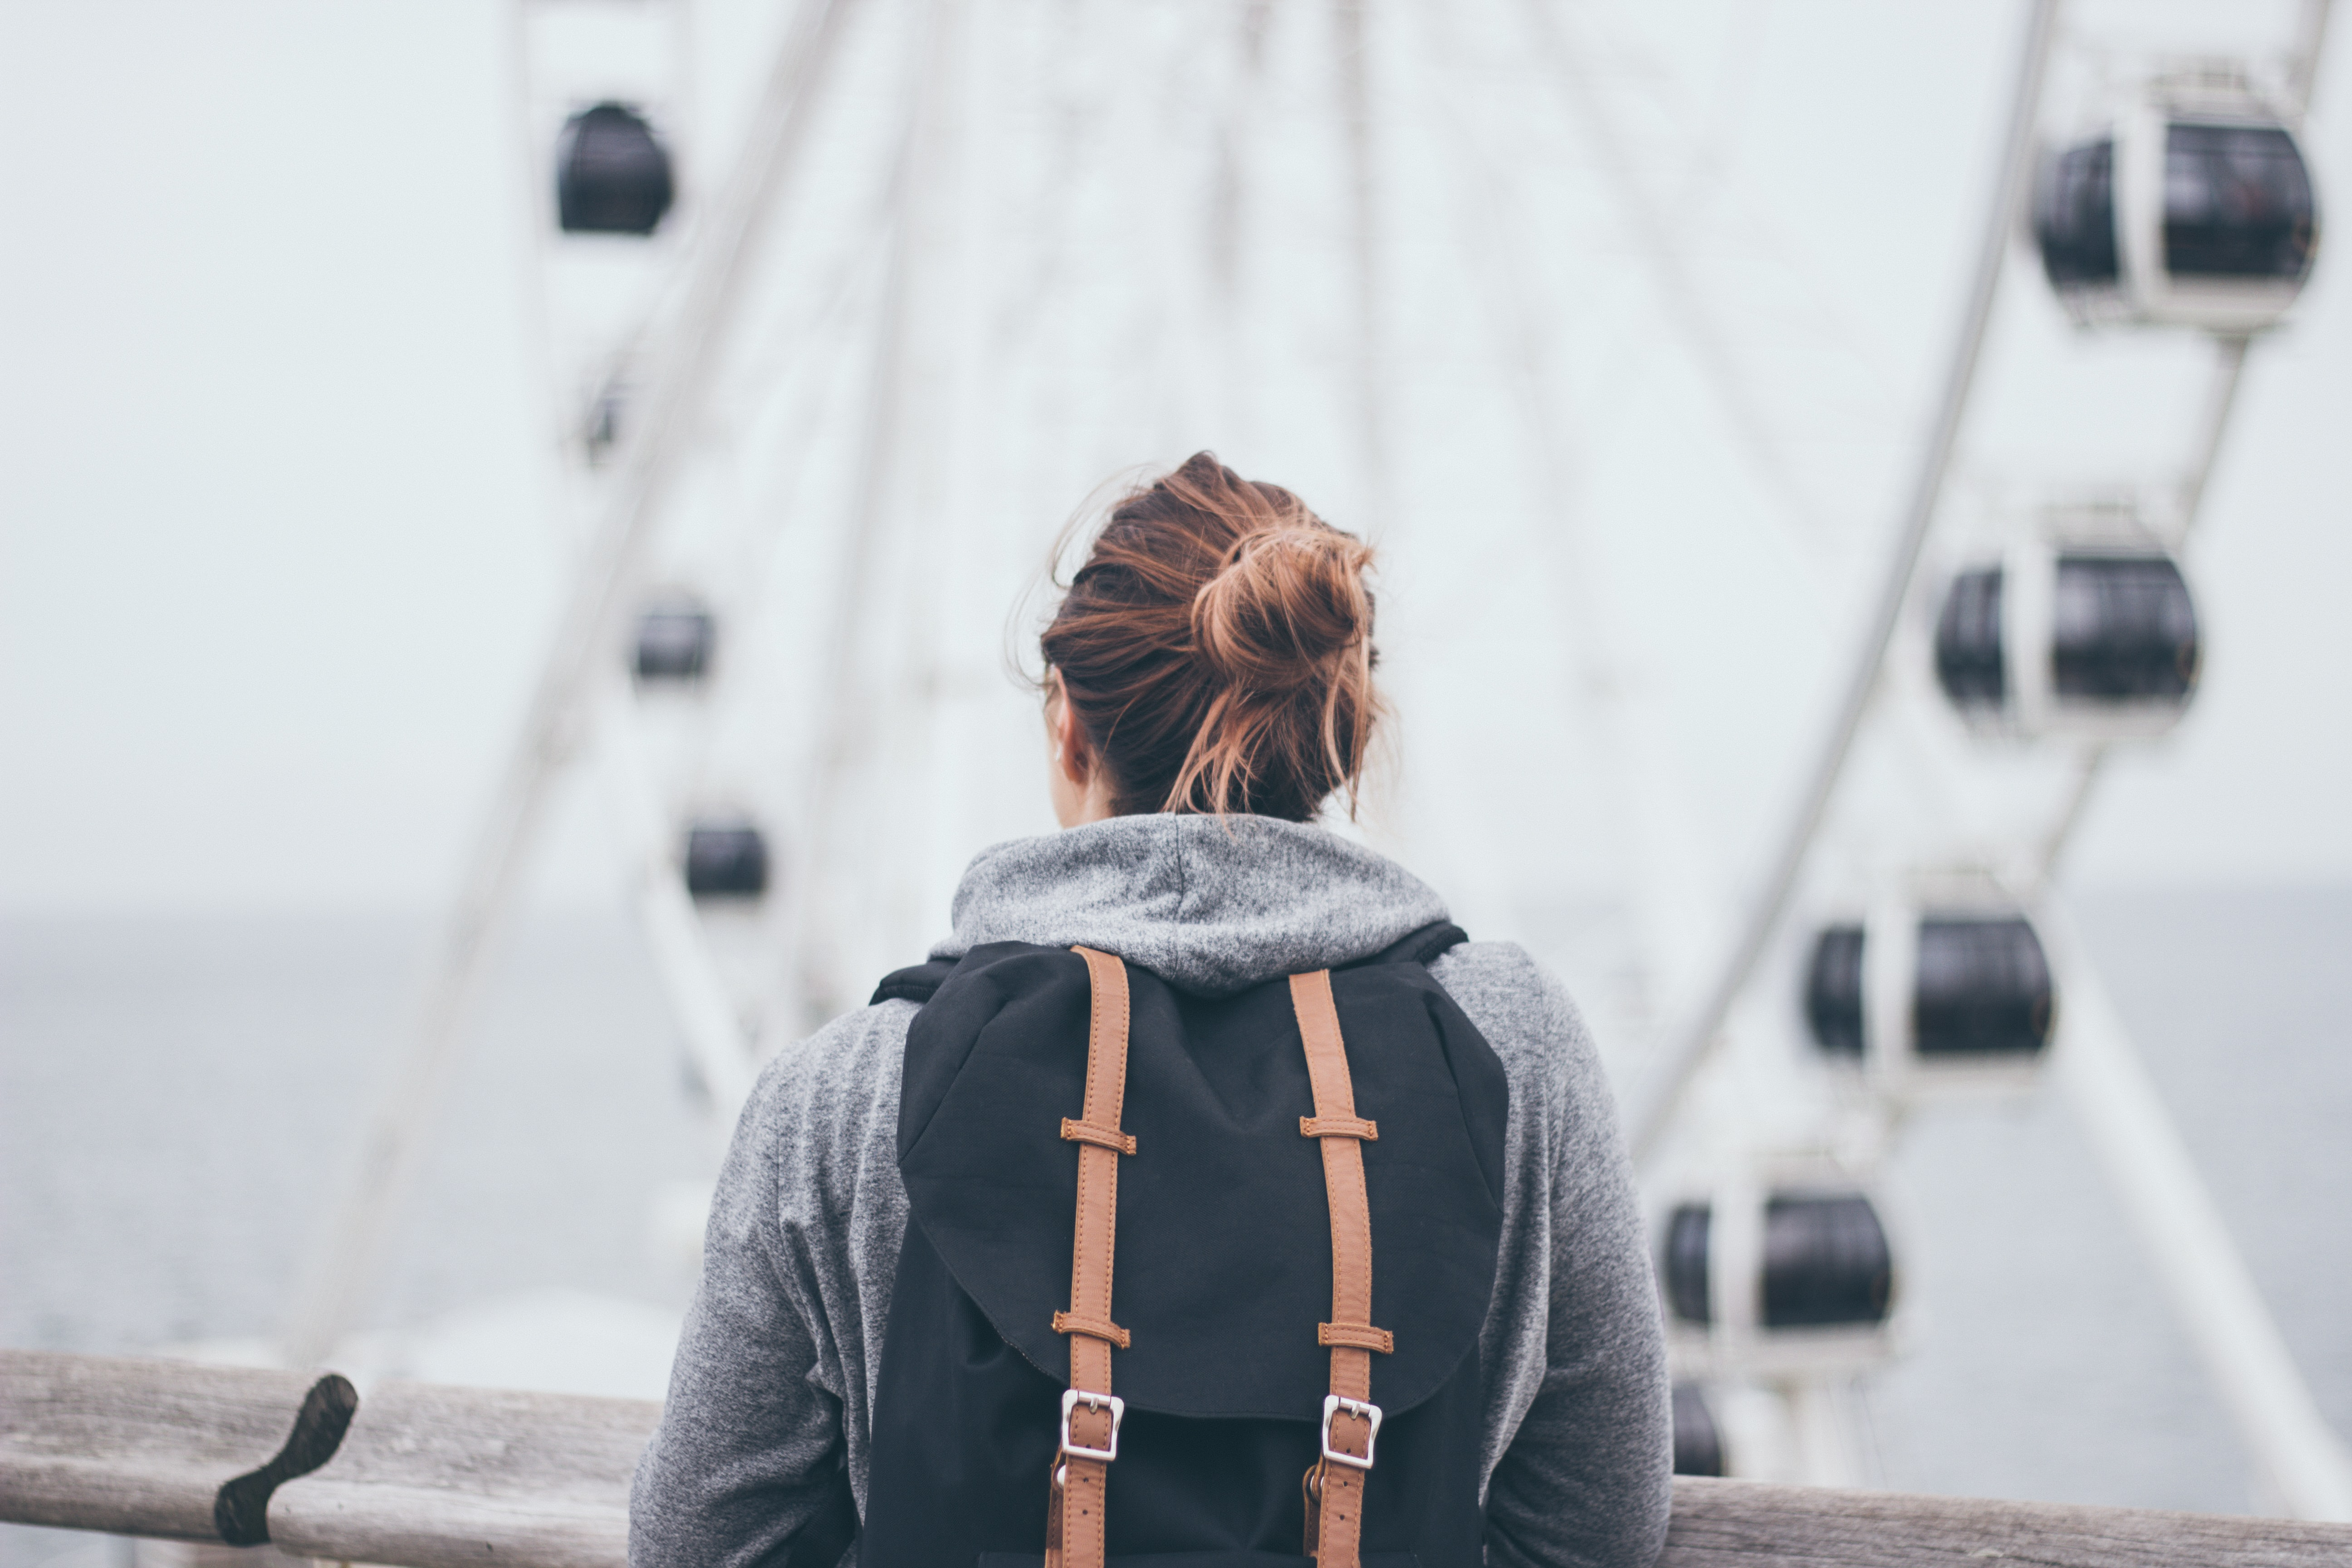 person carrying rucksack standing near rail